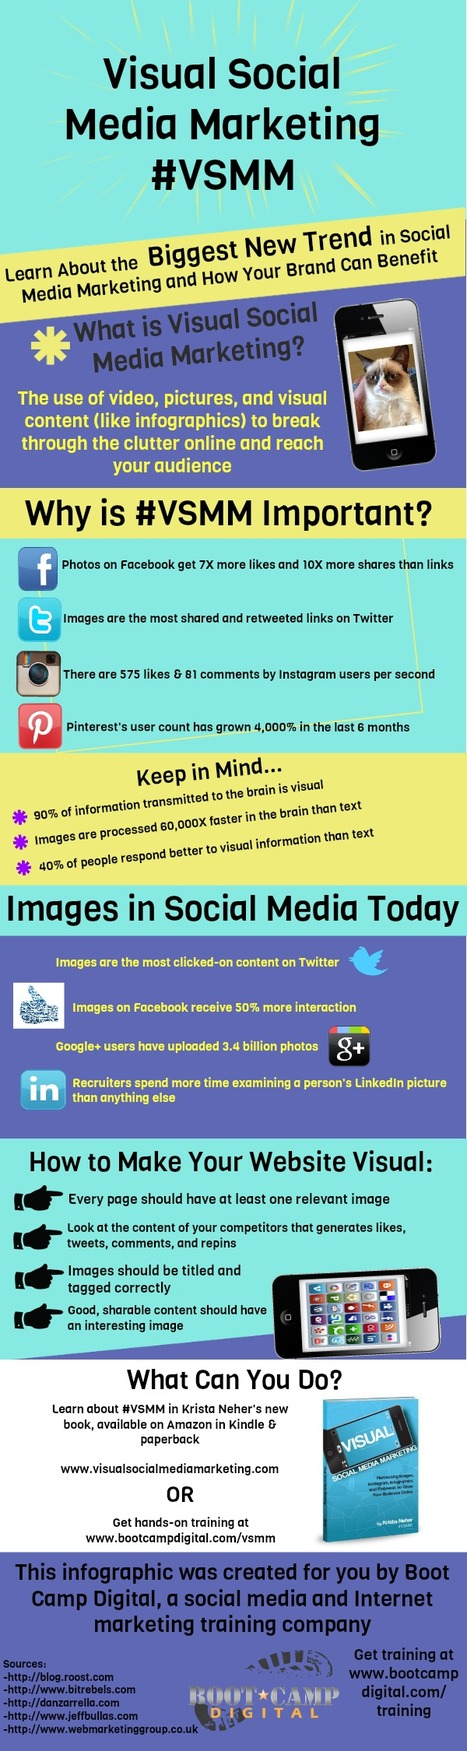 What Is Visual Social Media Marketing (And How Does It Raise Engagement)? [INFOGRAPHIC] | Integrated Communications themes milestone 1 2013 AUT | Scoop.it